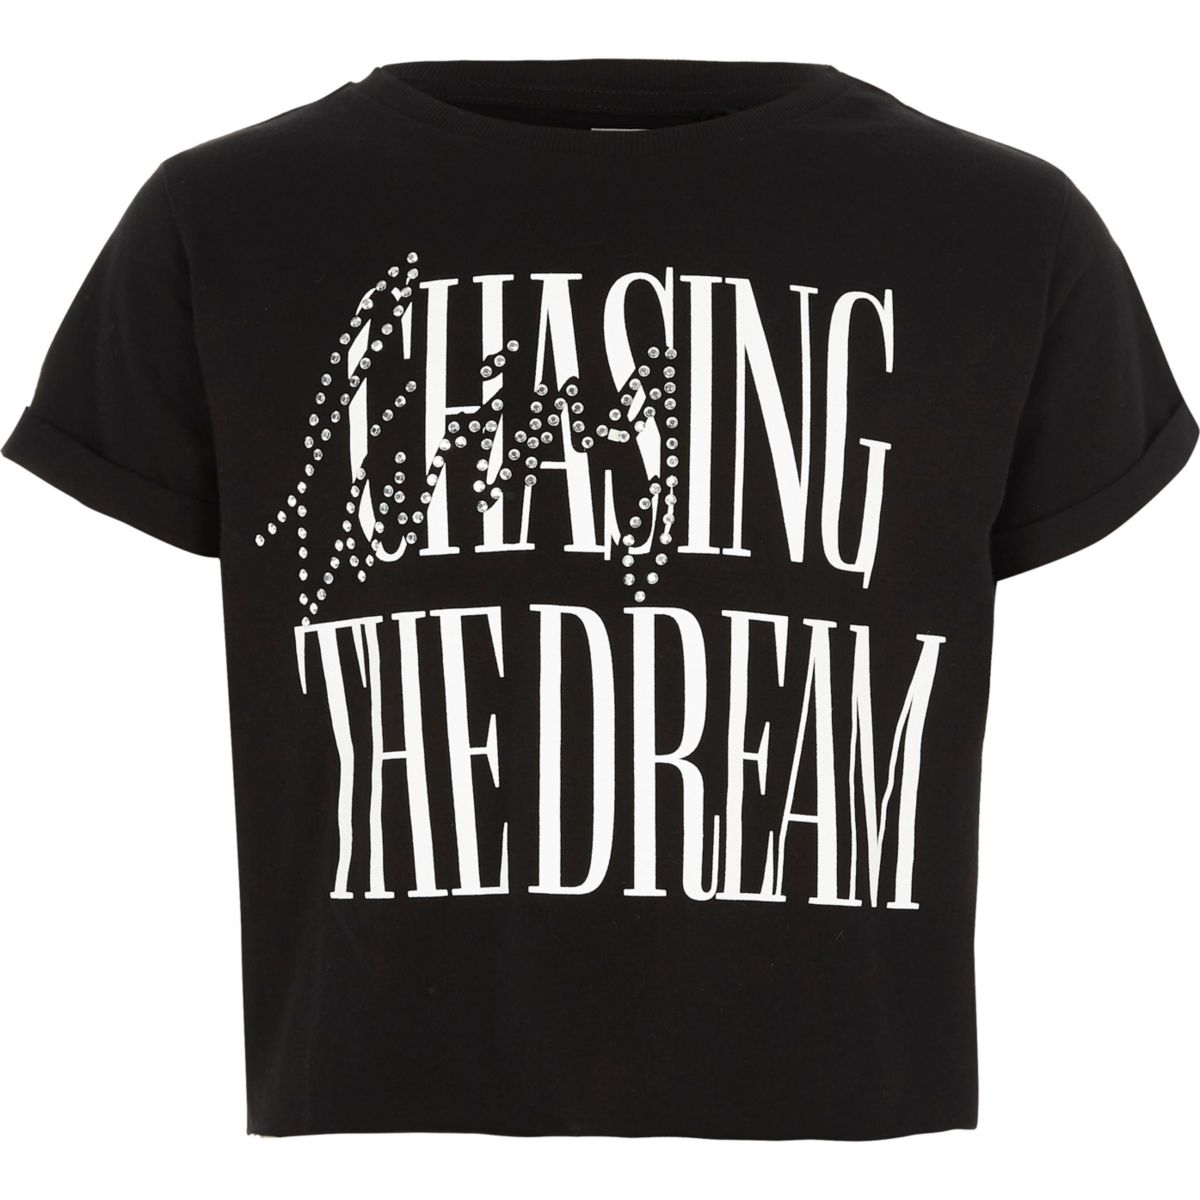 T-shirt court imprimé « the dream » noir pour fille